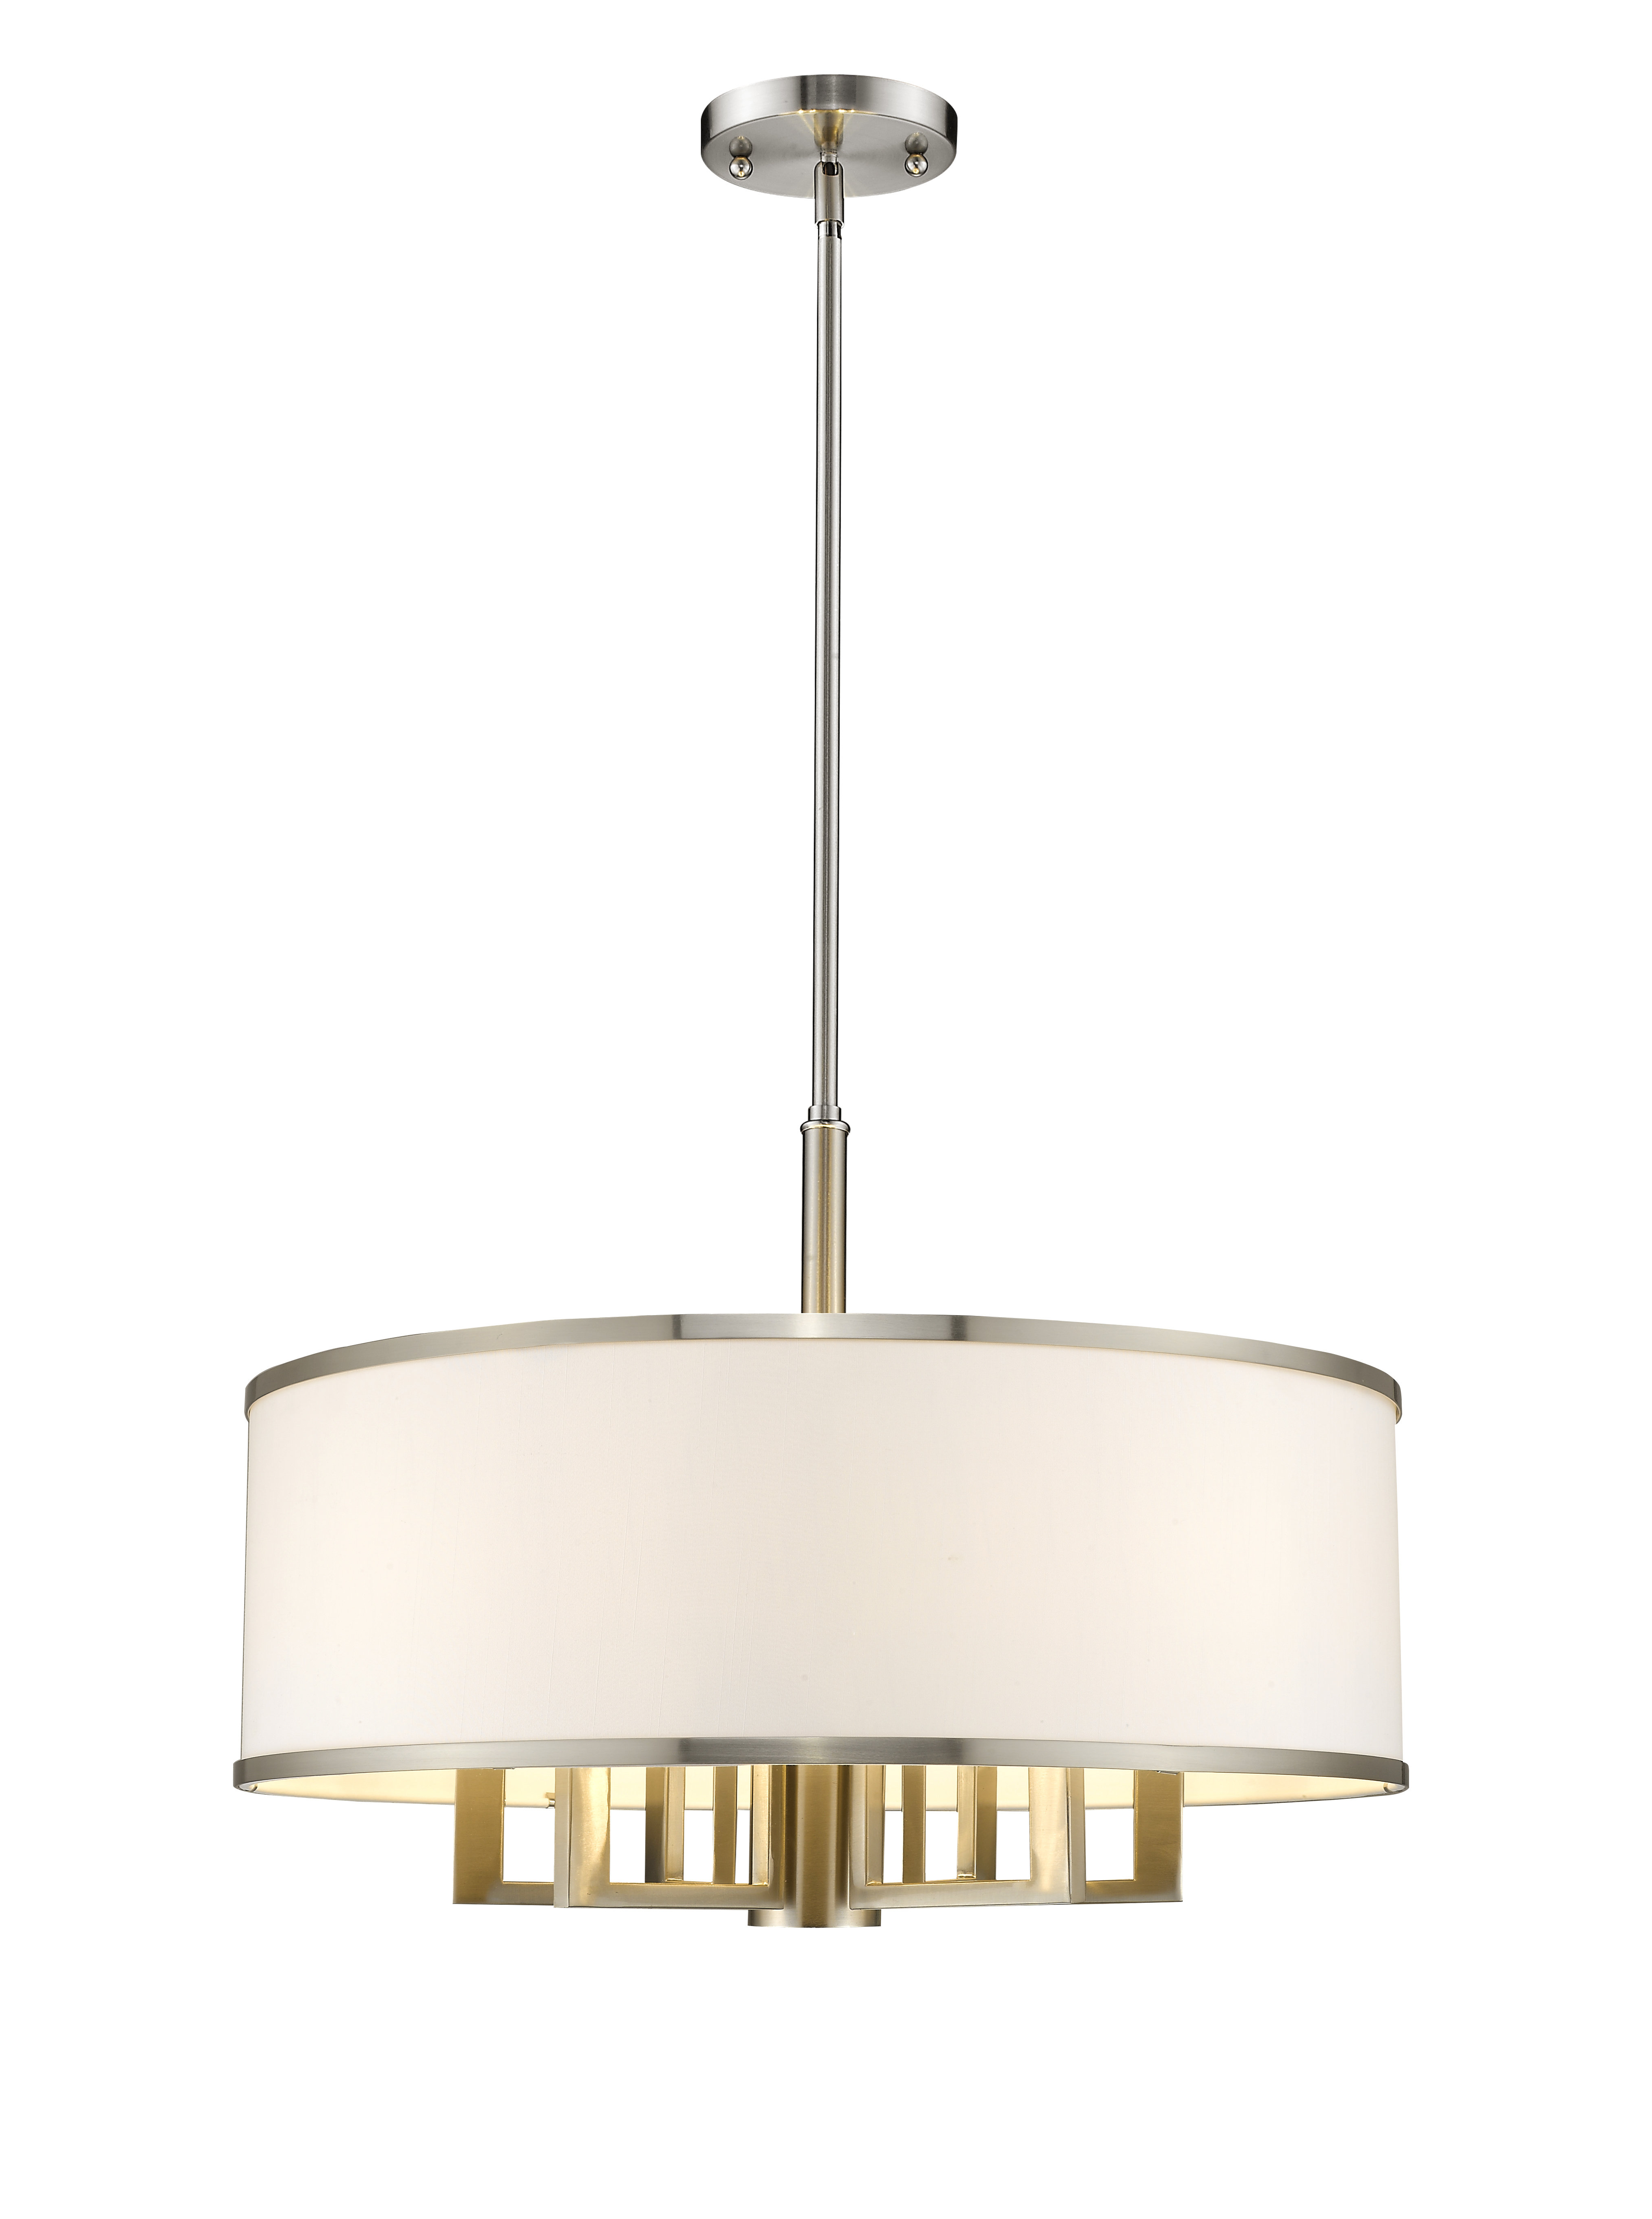 Breithaup 4-Light Drum Chandeliers with Popular Breithaup 7-Light Drum Chandelier